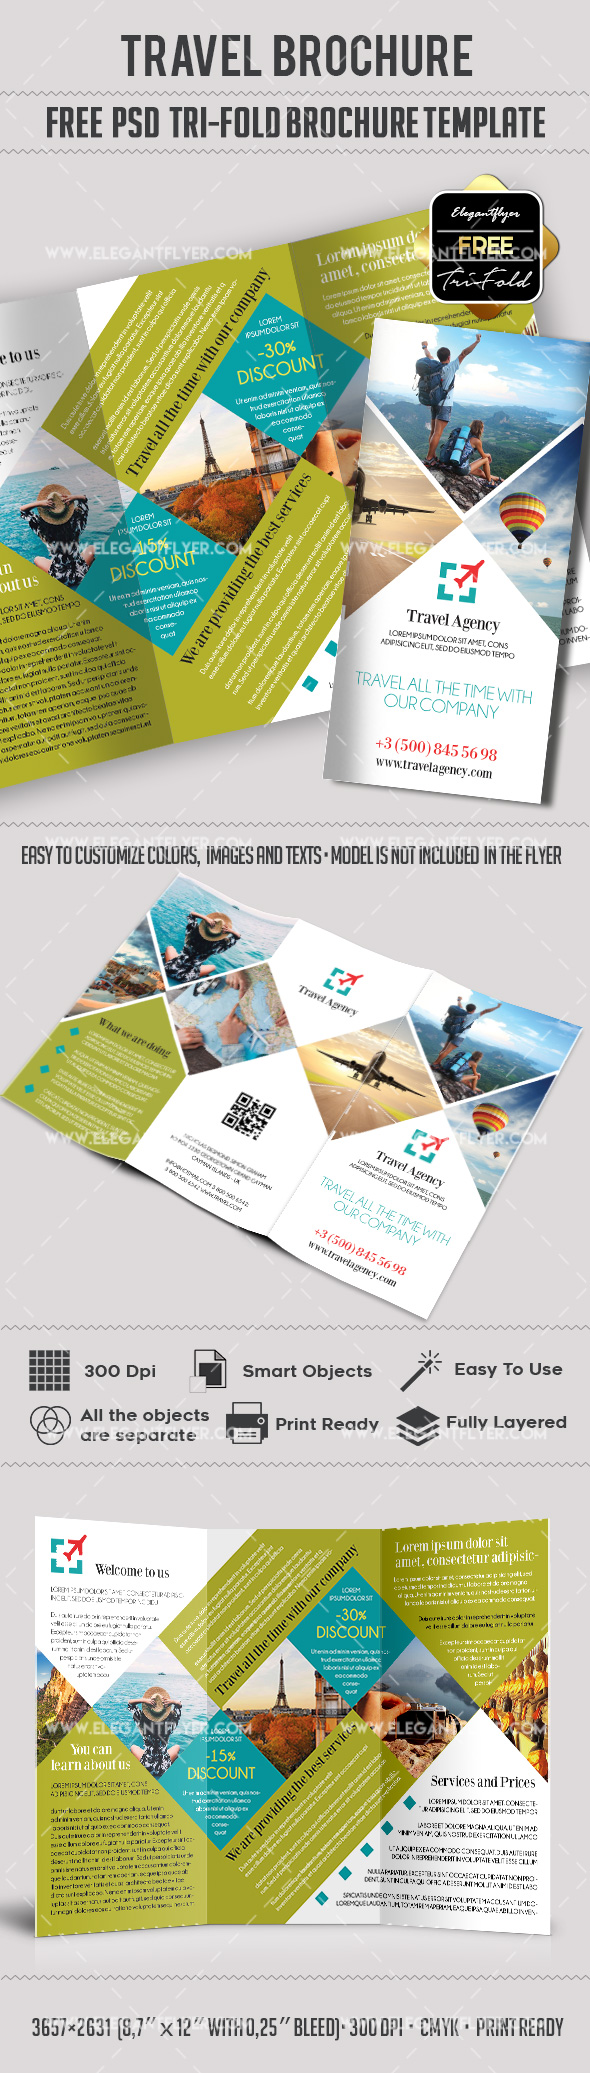 Travel free psd tri fold psd brochure template by for Free travel brochure templates